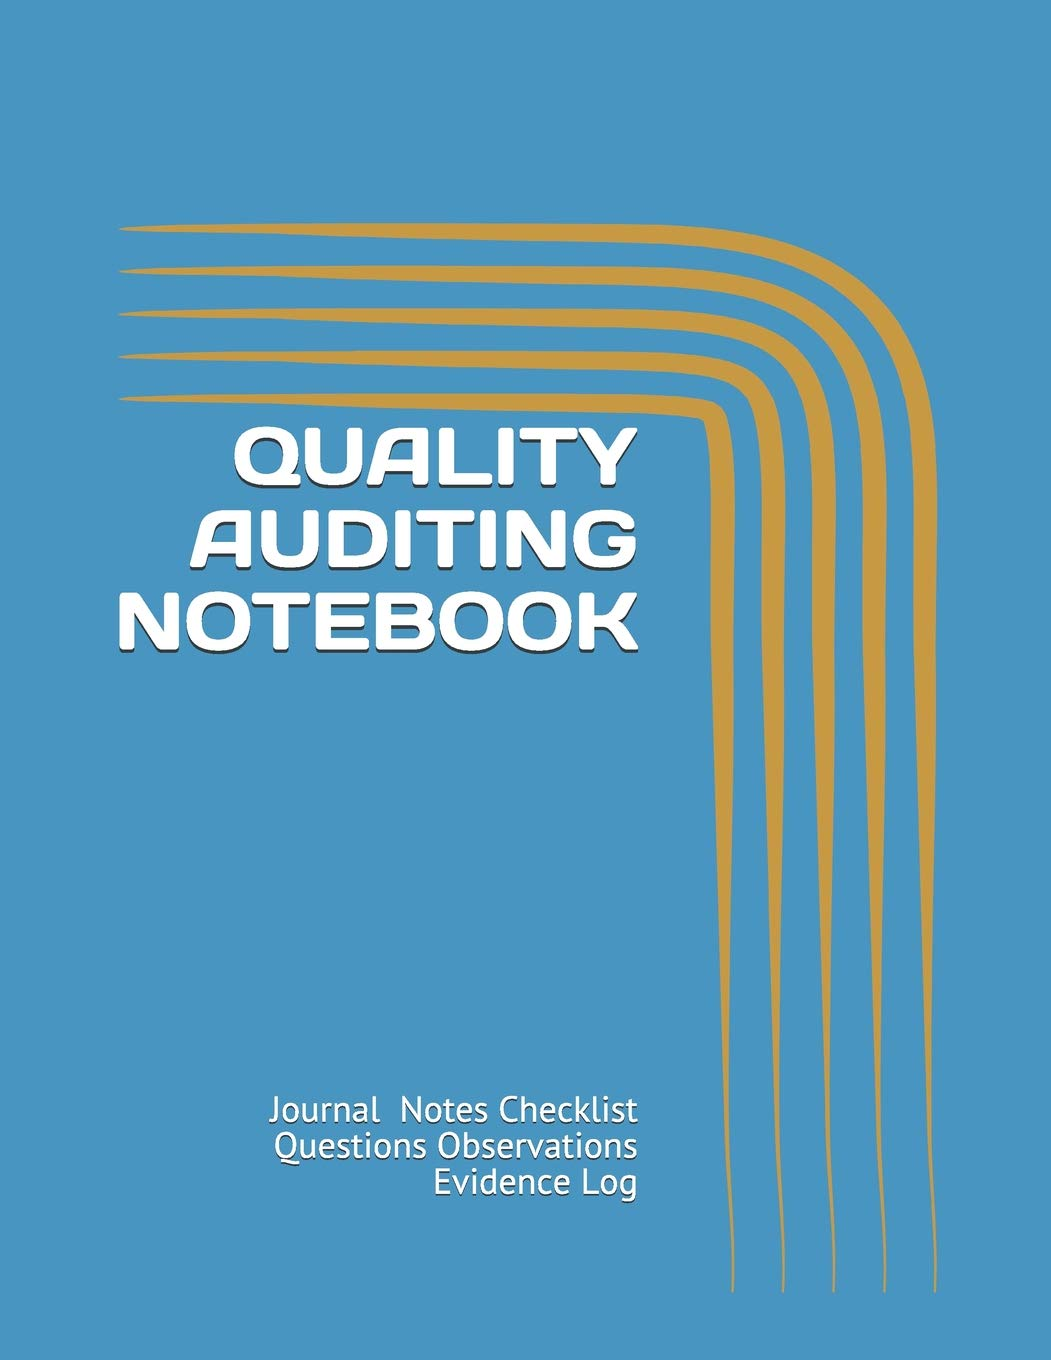 QUALITY AUDITING NOTEBOOK: Journal Notes Checklist Questions